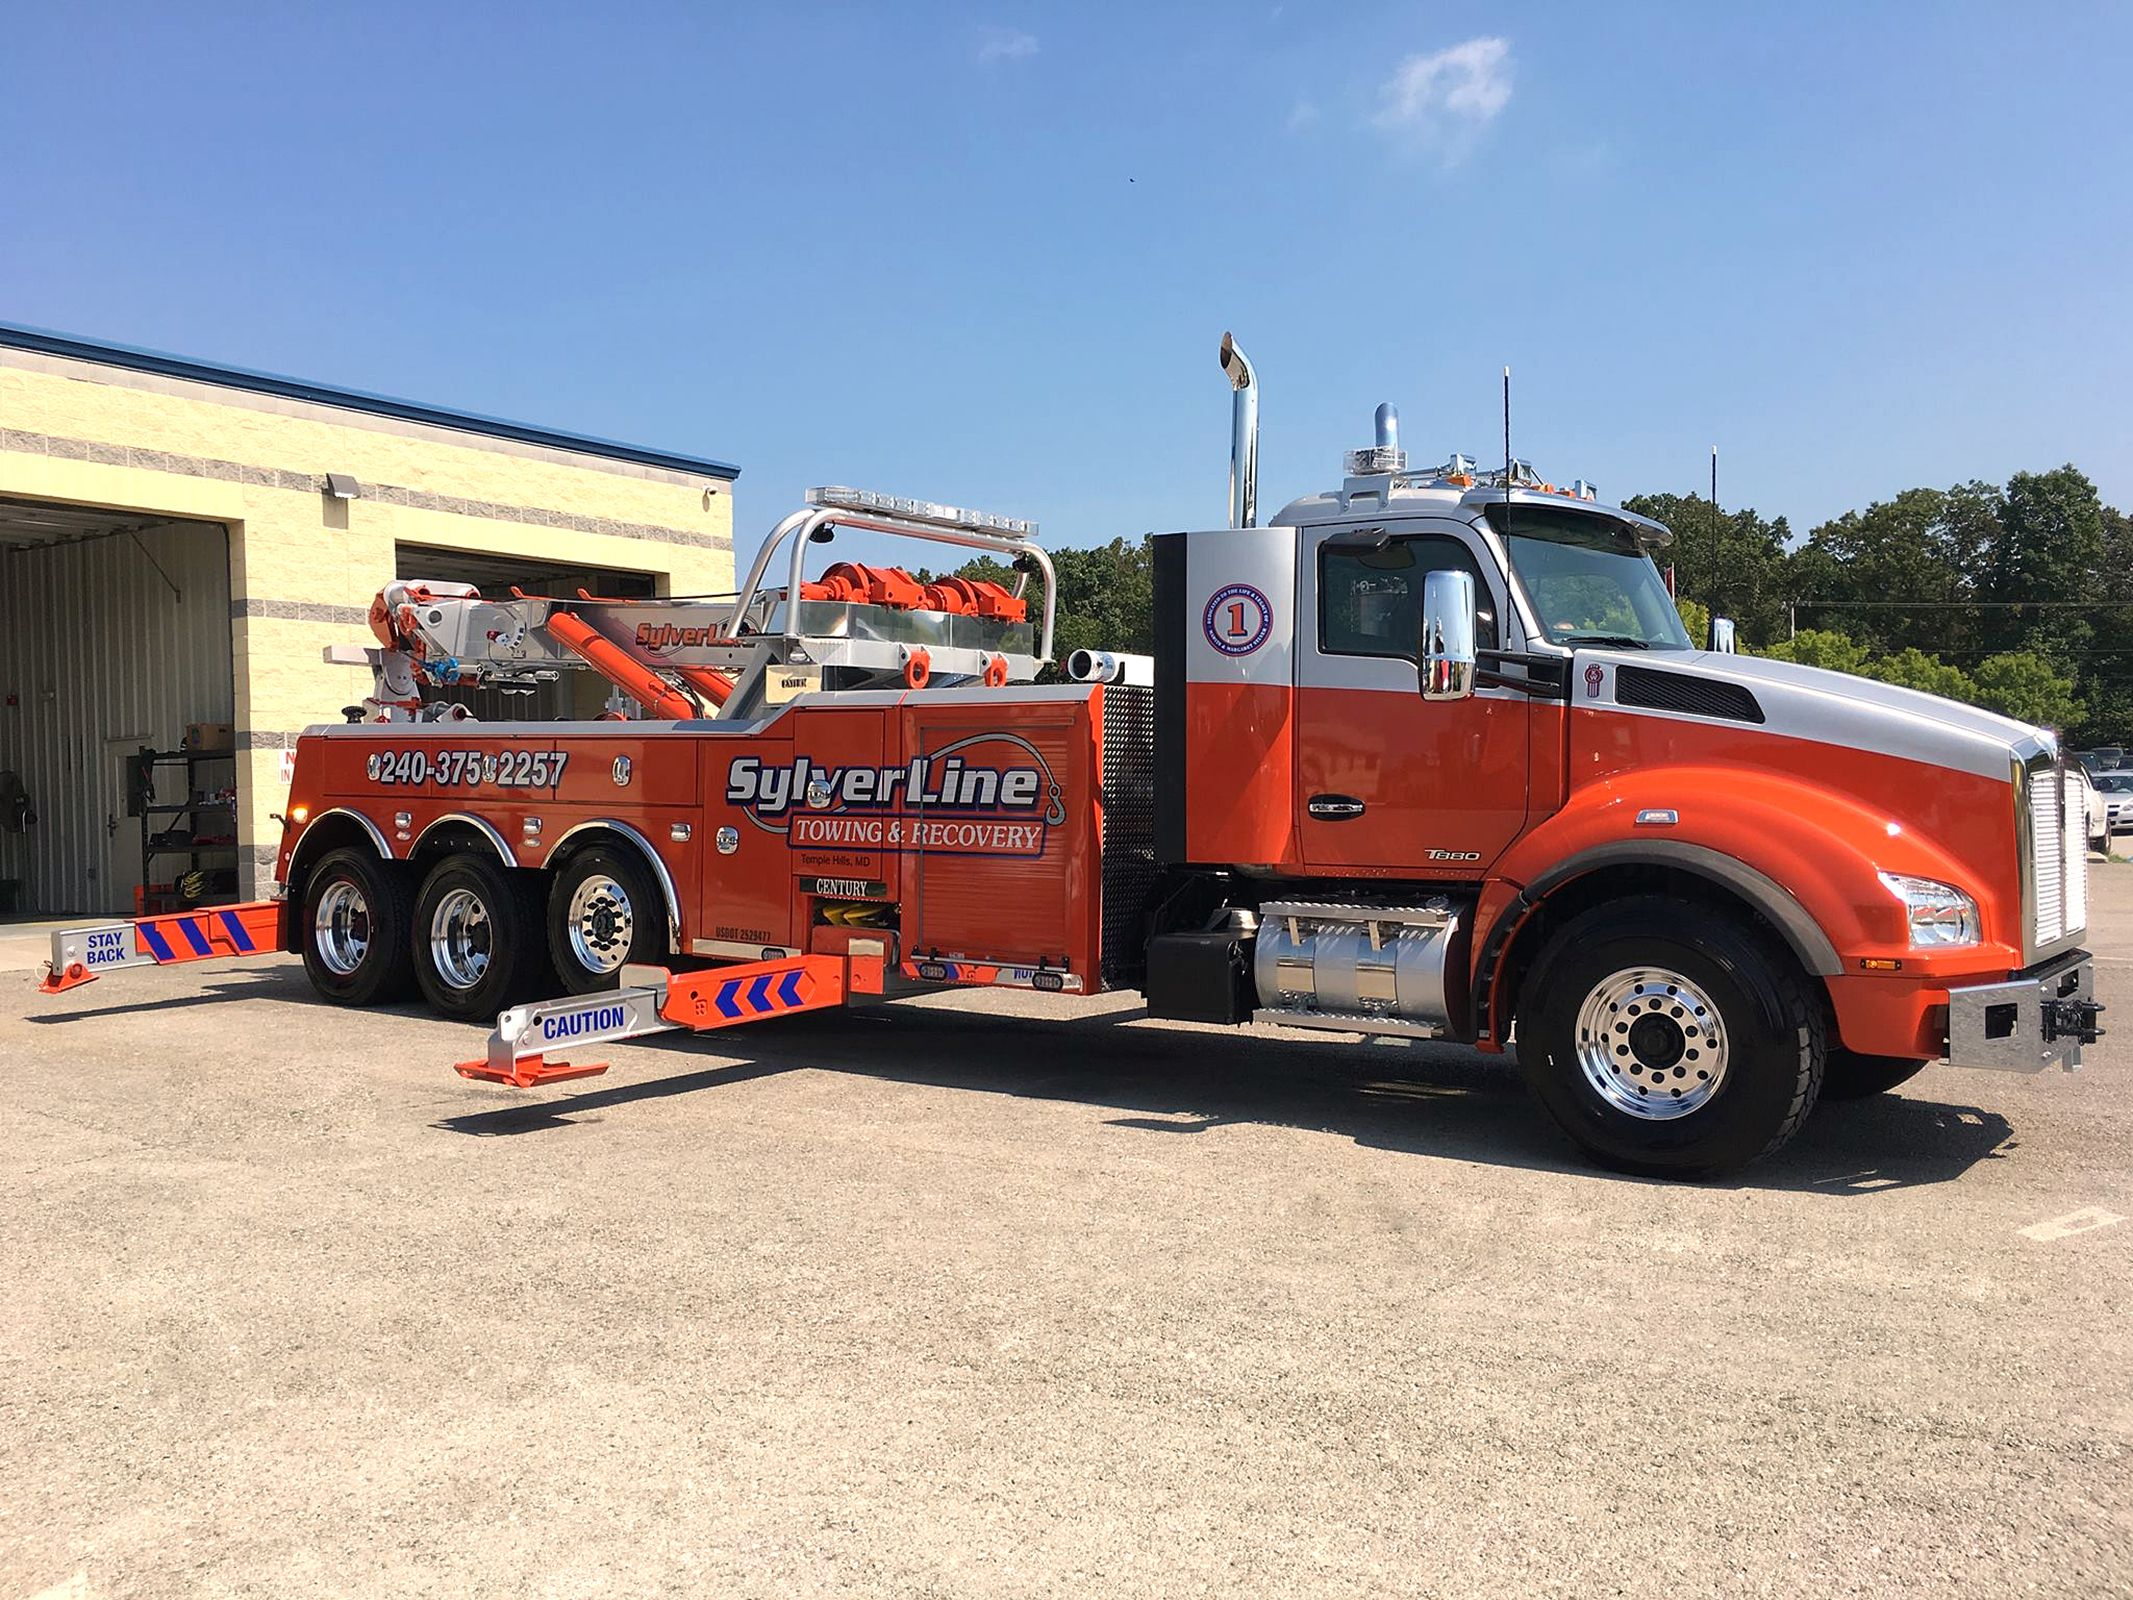 Jamie Davis With Images Tow Truck Car Hauler Trailer Heavy Duty Trucks